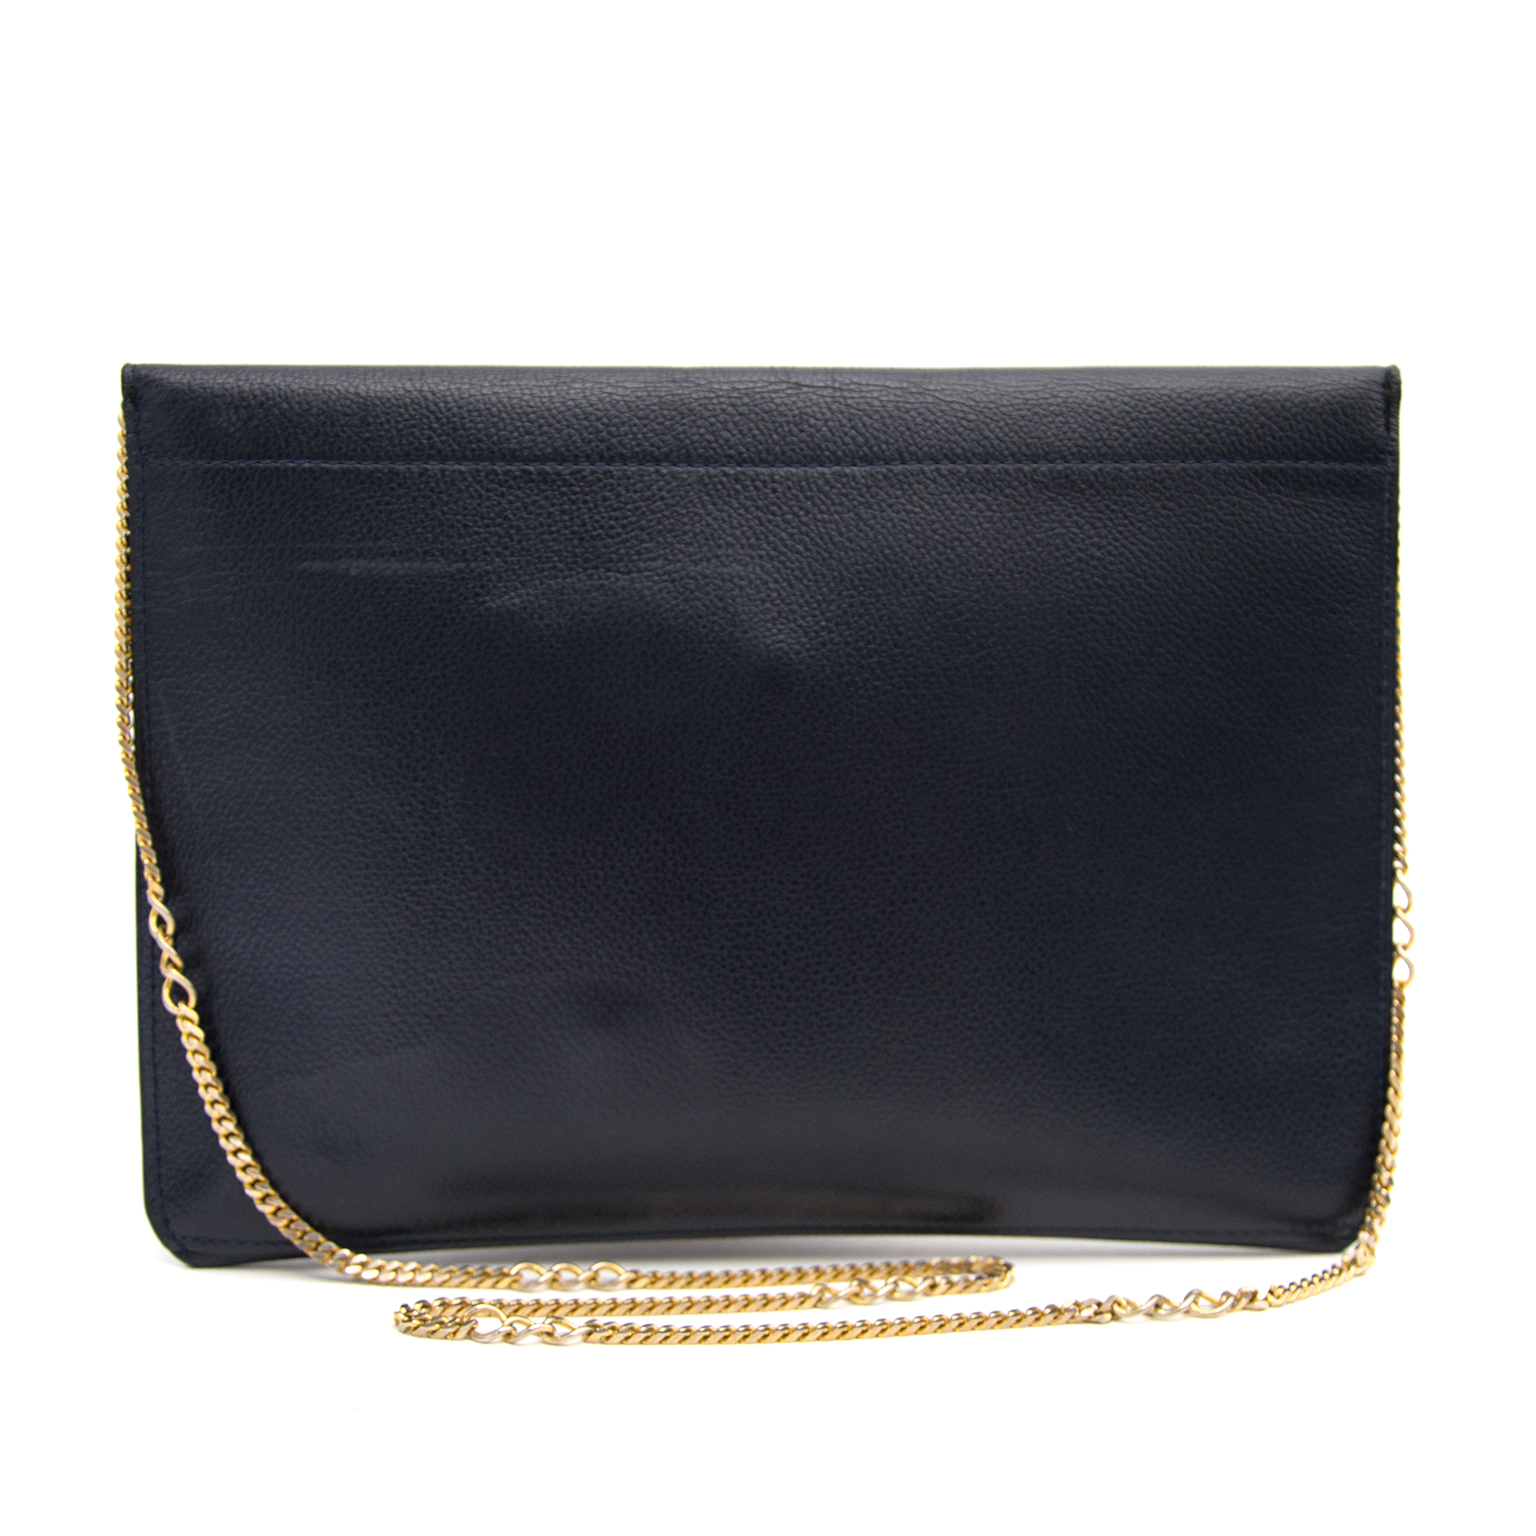 Delvaux Blue leather clutch now online at labellov.com for the best price